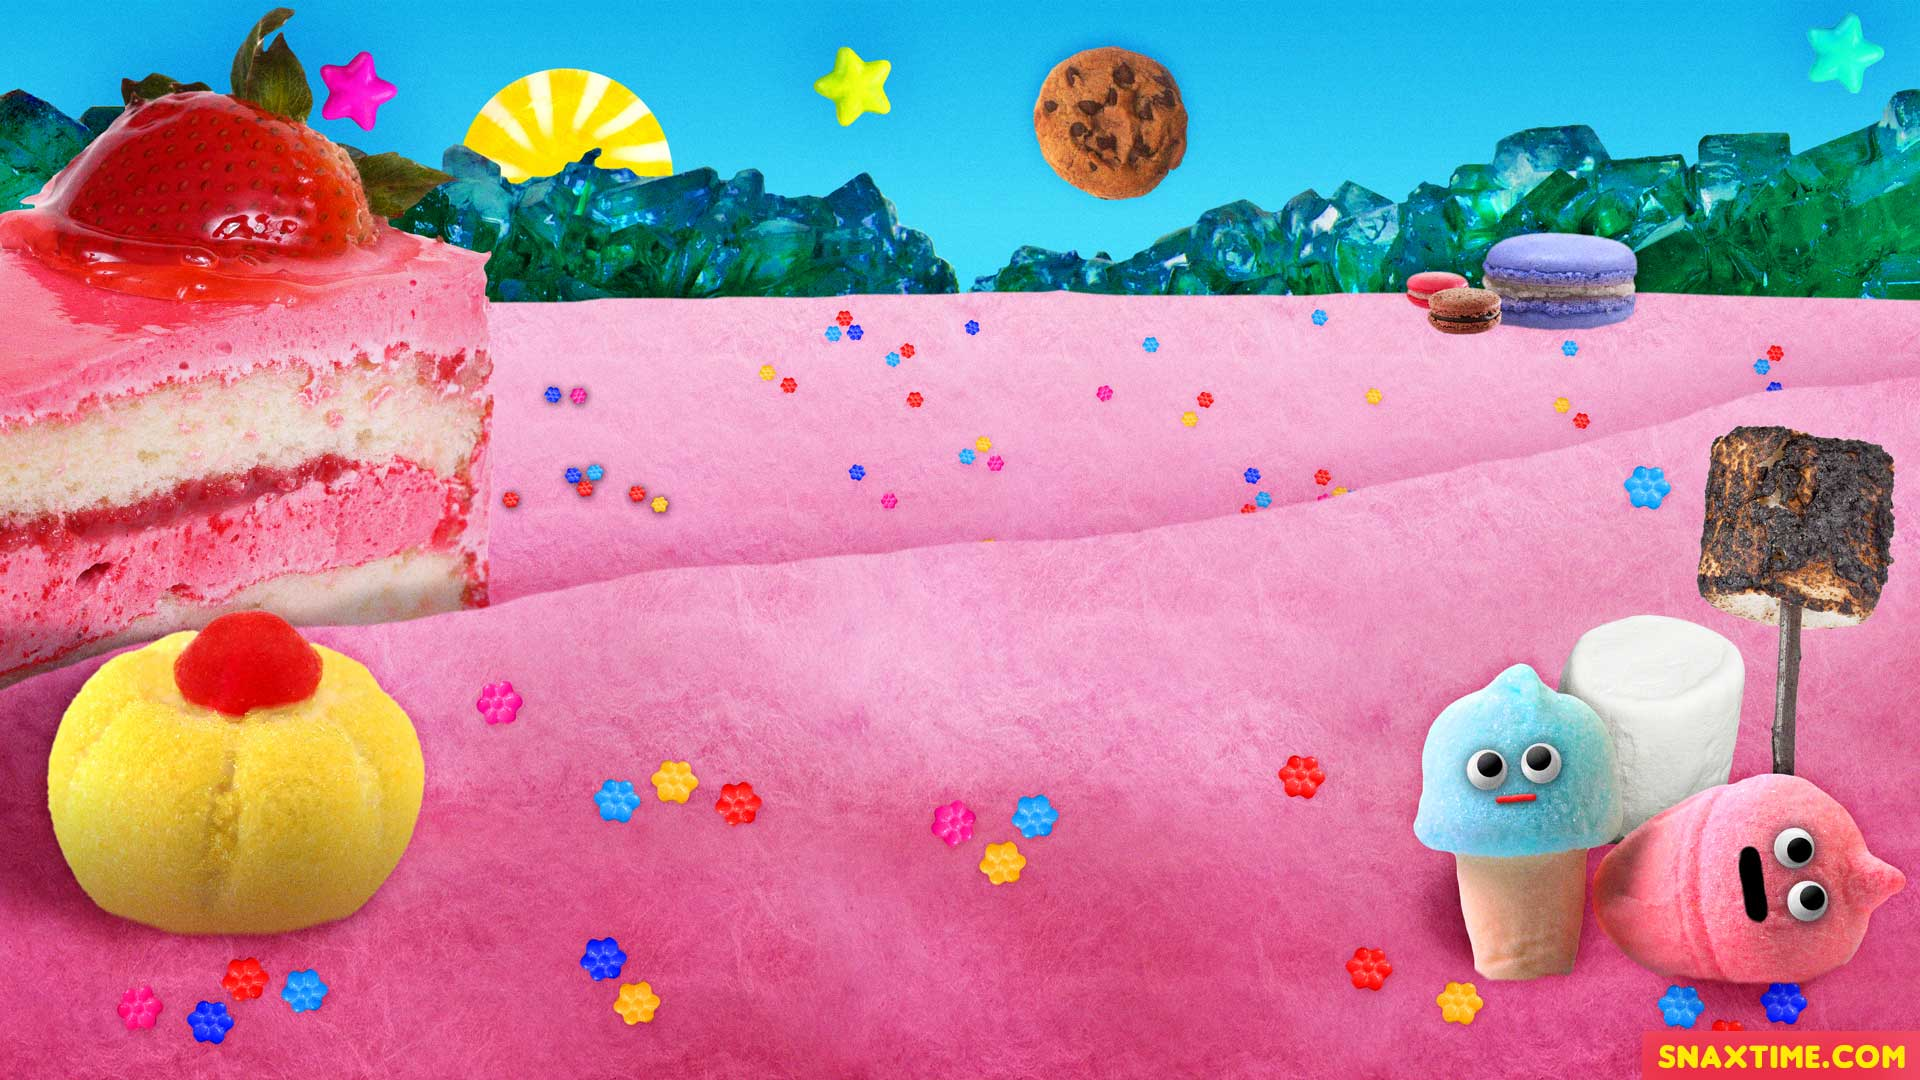 Free Zoom Background - Cotton Candy Cookies Rock Candy Marshmallows